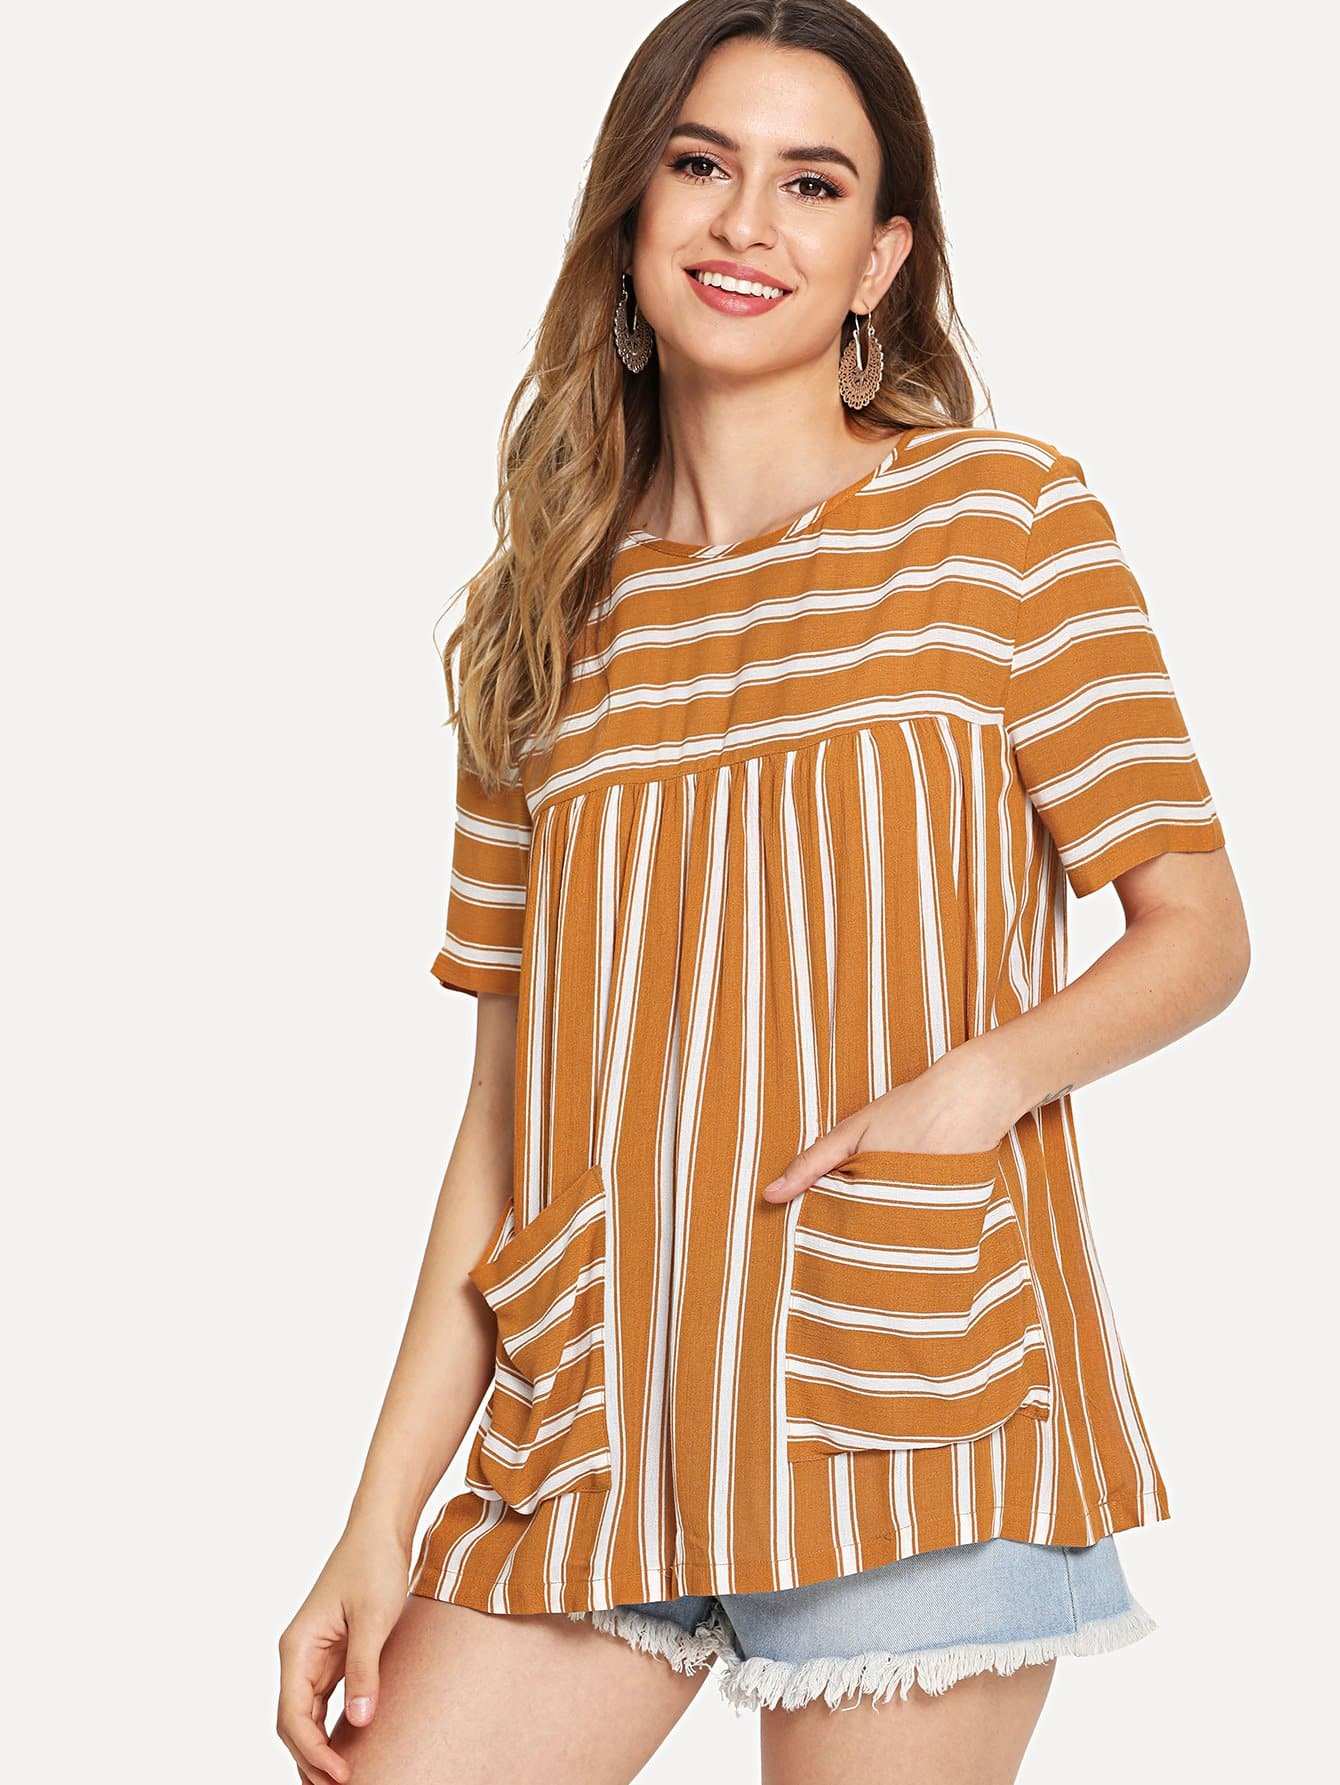 Dual Pocket Front Striped Tunic Top striped front pocket tank top